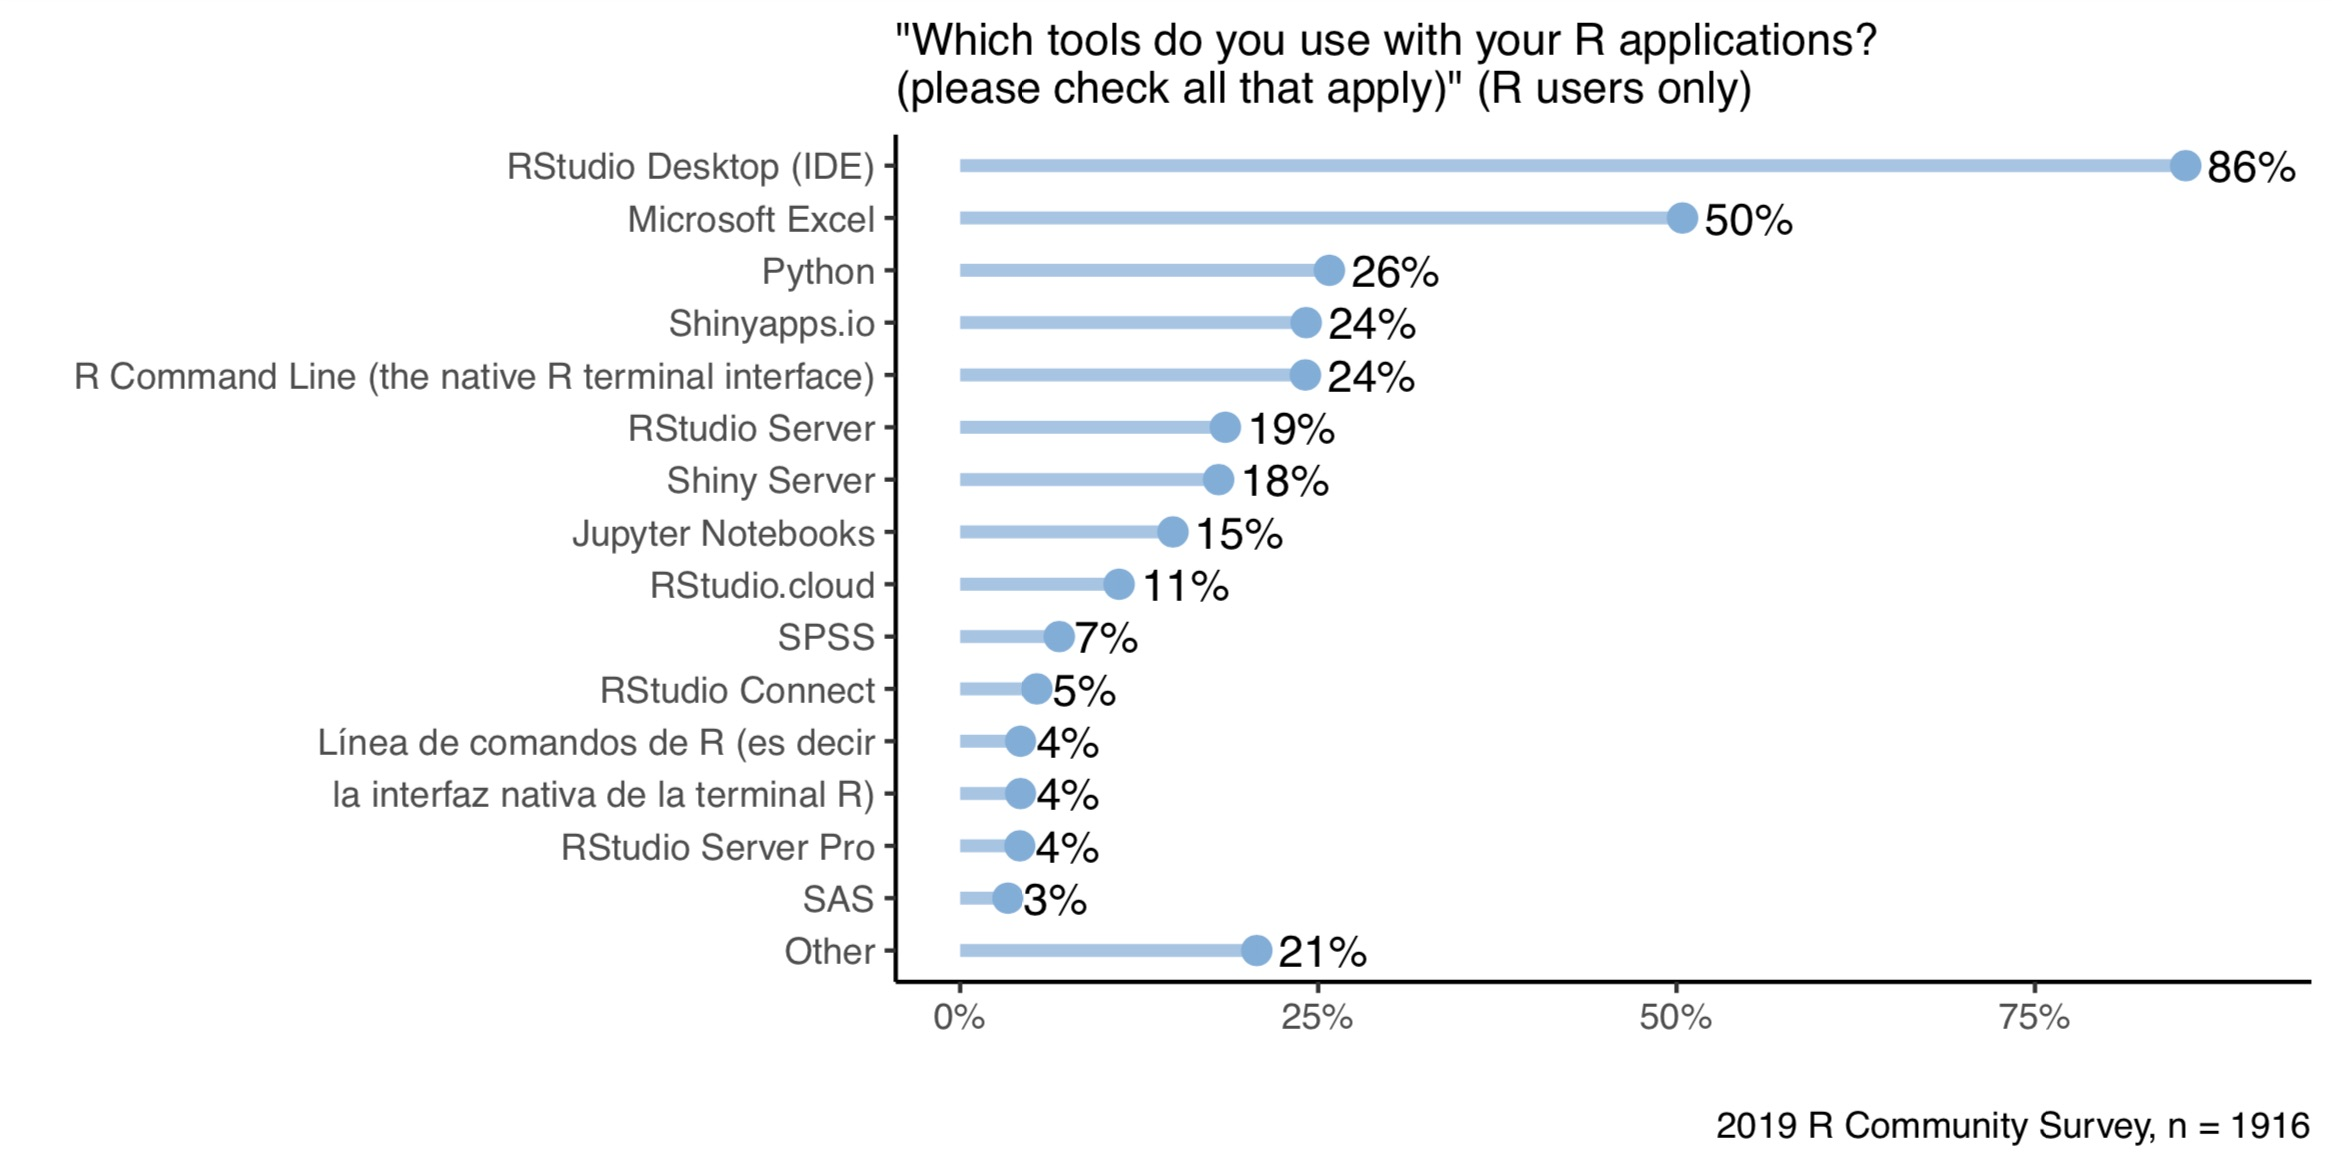 Chart from survey for tools used with R applications